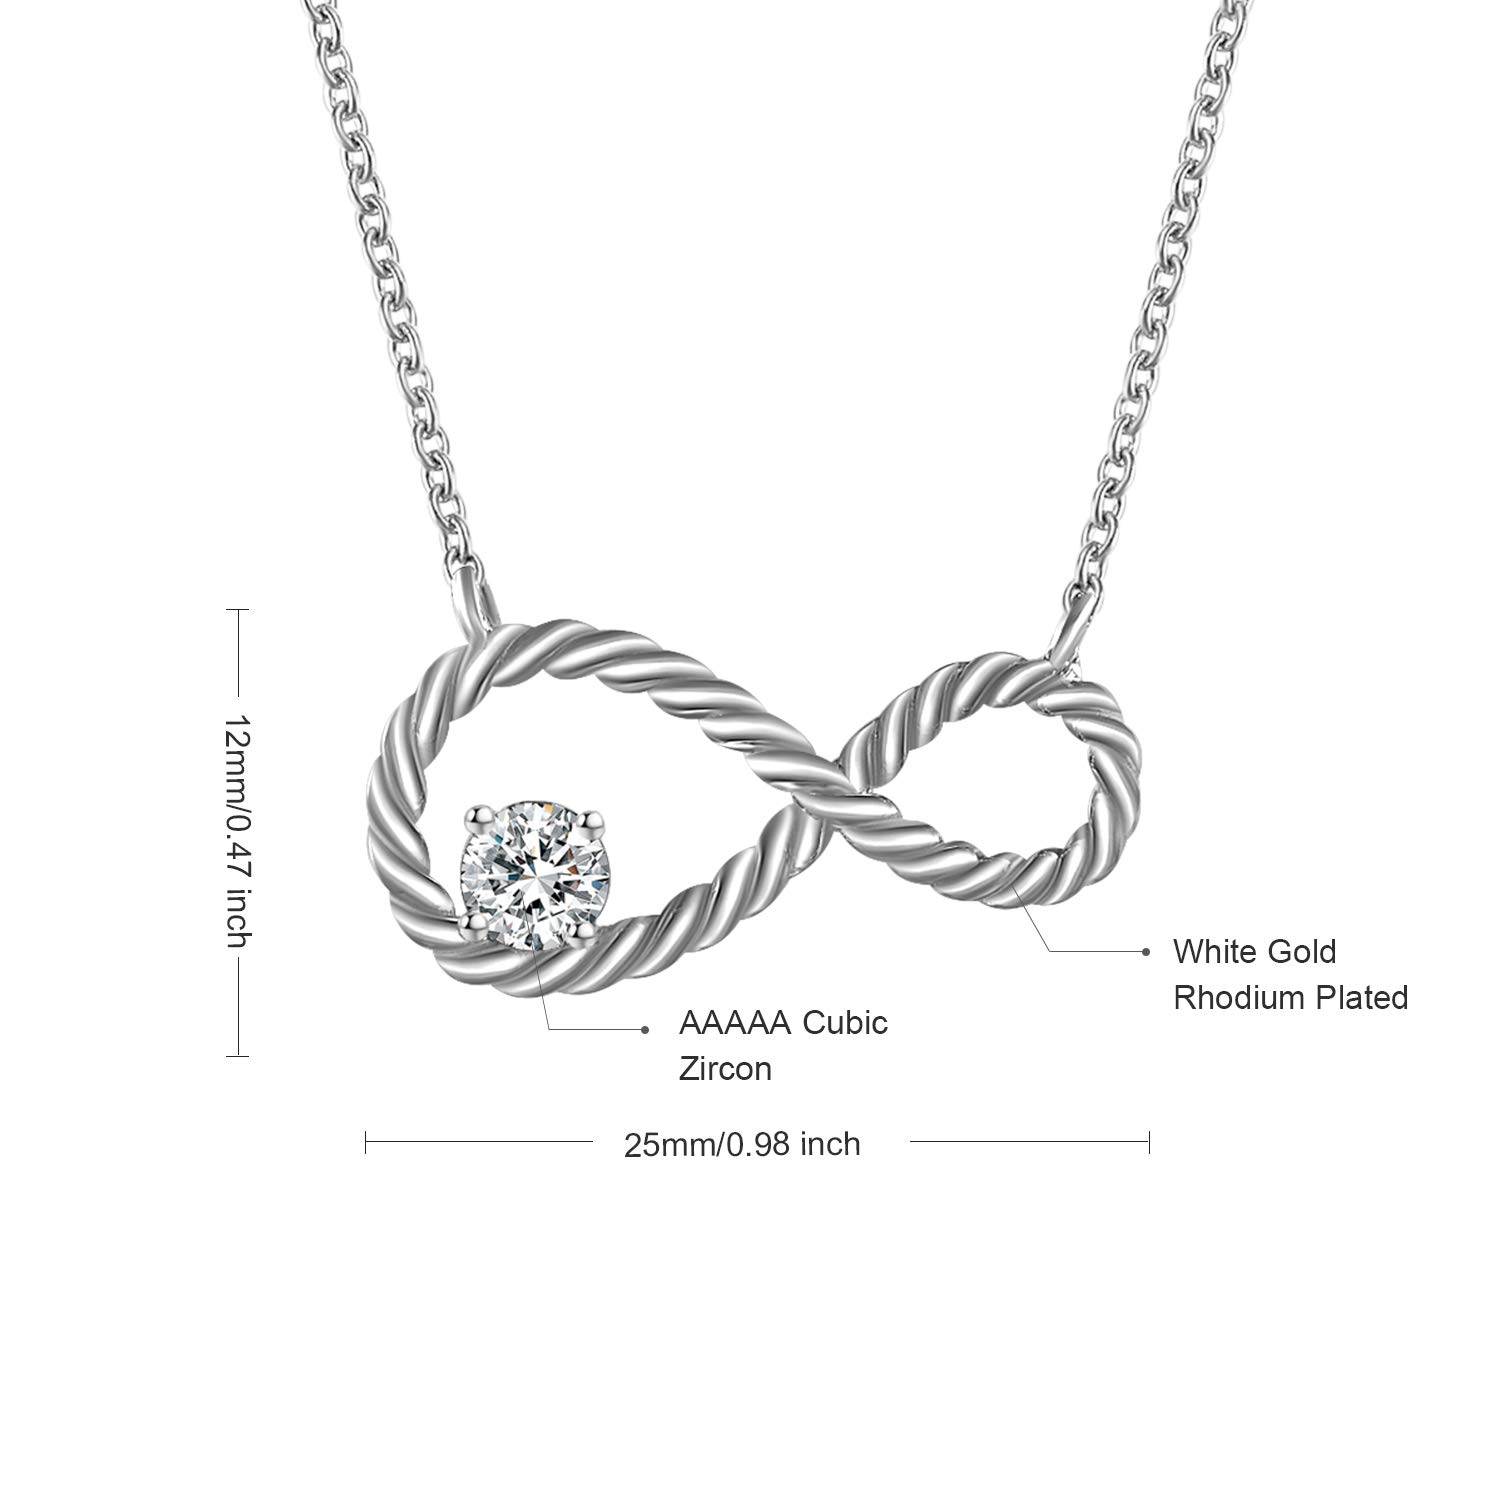 QUINBY 925 Sterling Silver Womens Infinity Necklace Gift with Cubic Zirconia Pendant Necklaces Jewelry Gifts for Girlfriend Lover Mom Anniversary Present Wife Chain Cord Necklace Personalized Gift